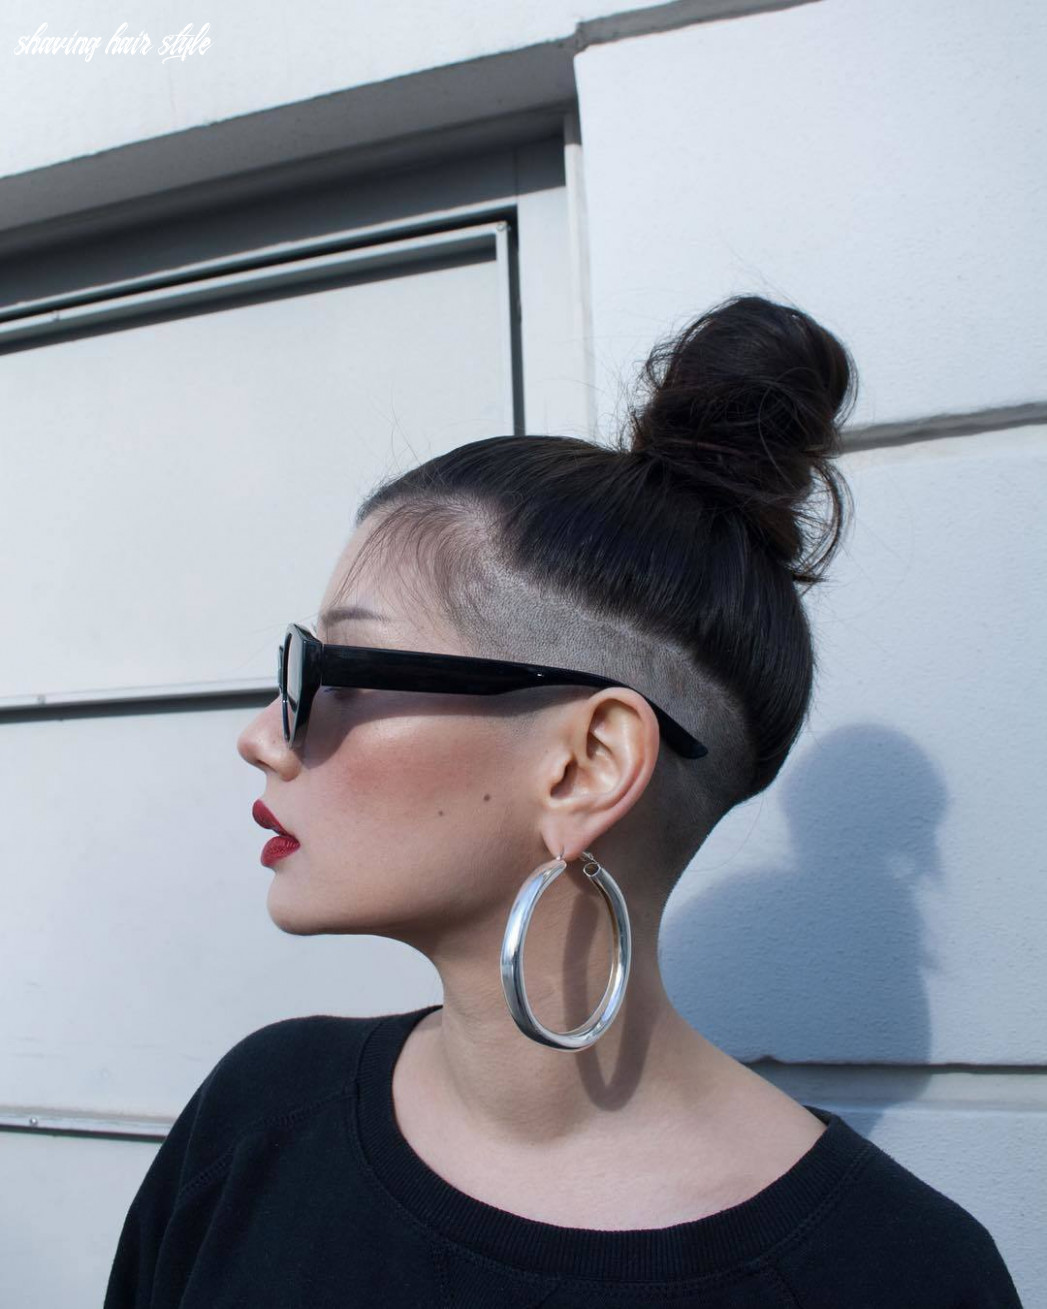 12 bold shaved hairstyles for women | shaved hair designs shaving hair style